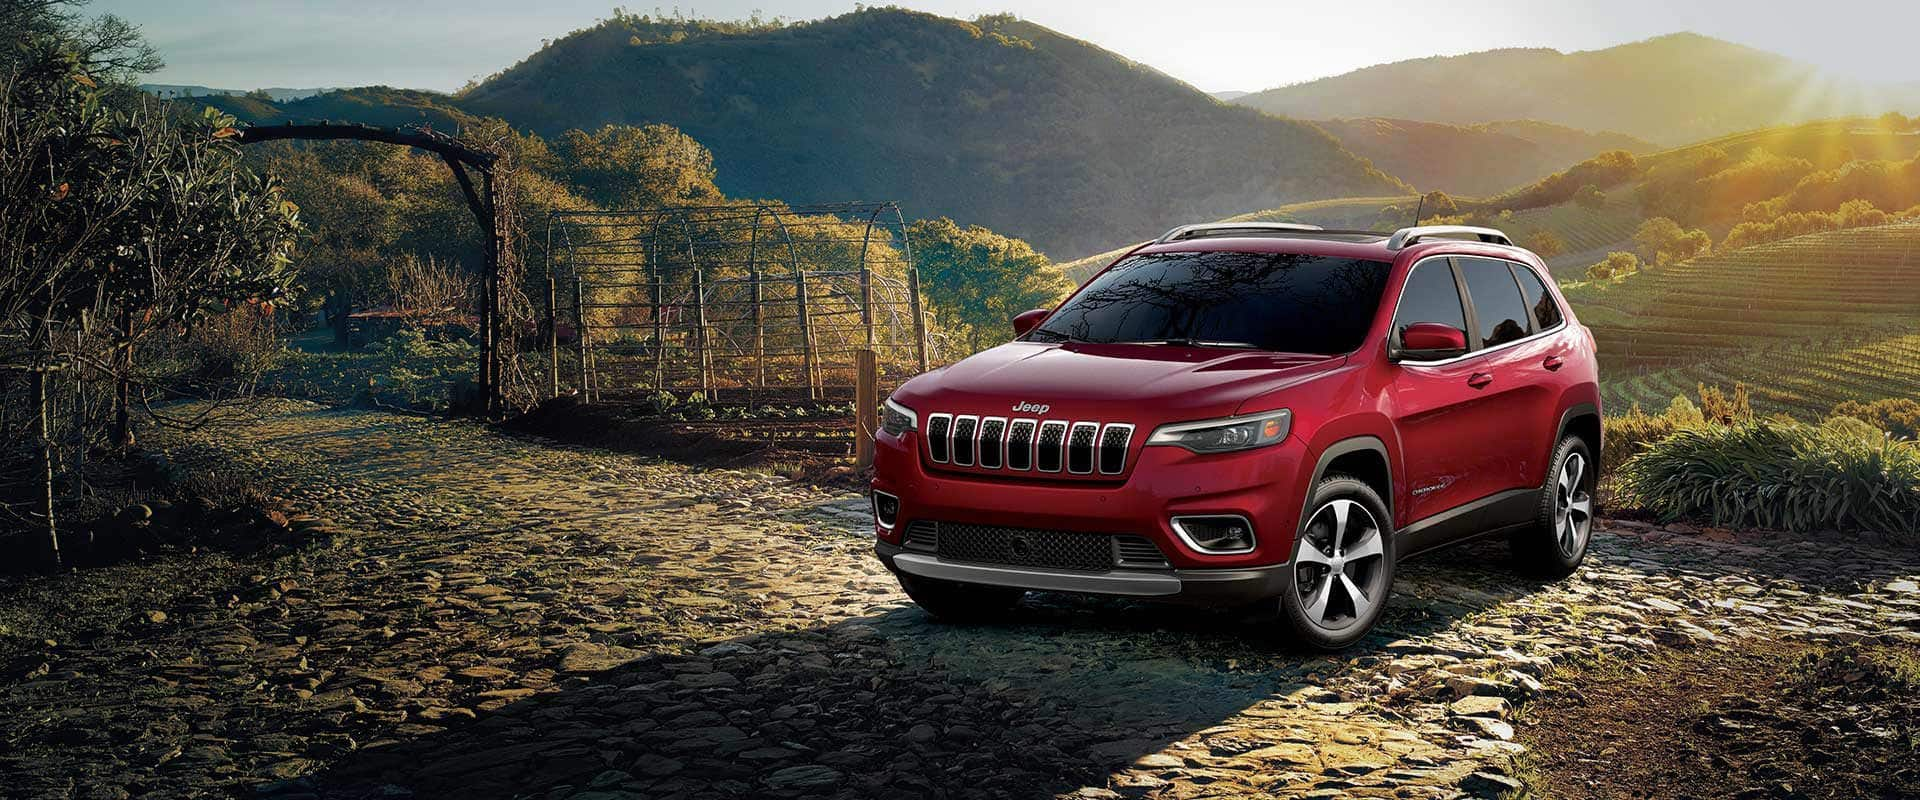 2019-Jeep-Cherokee-Limited-Overview-Hero